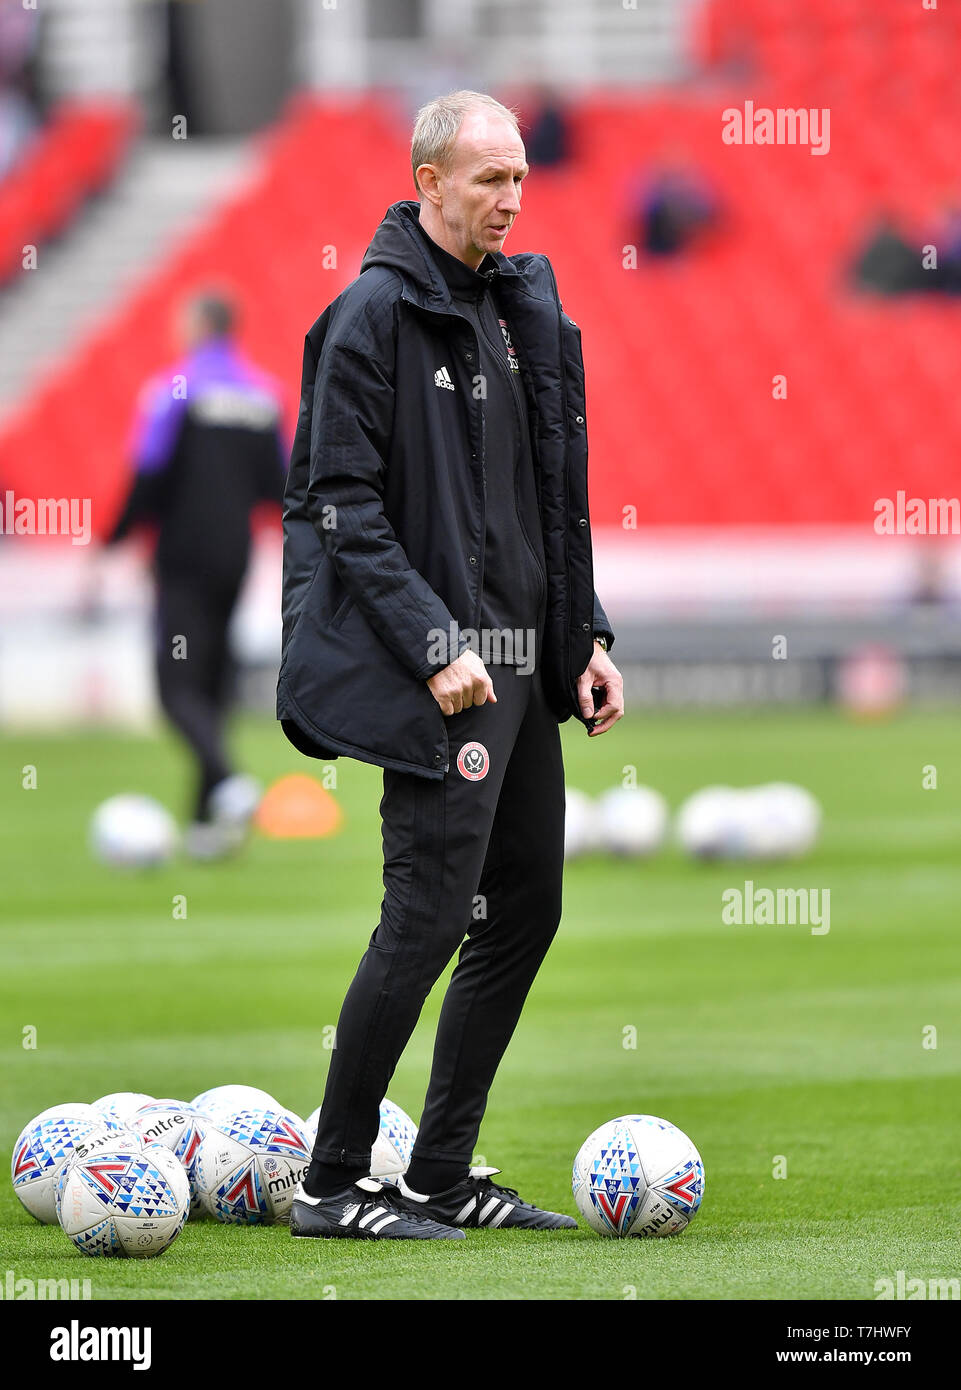 Sheffield United assistant manager Alan Knill - Stock Image